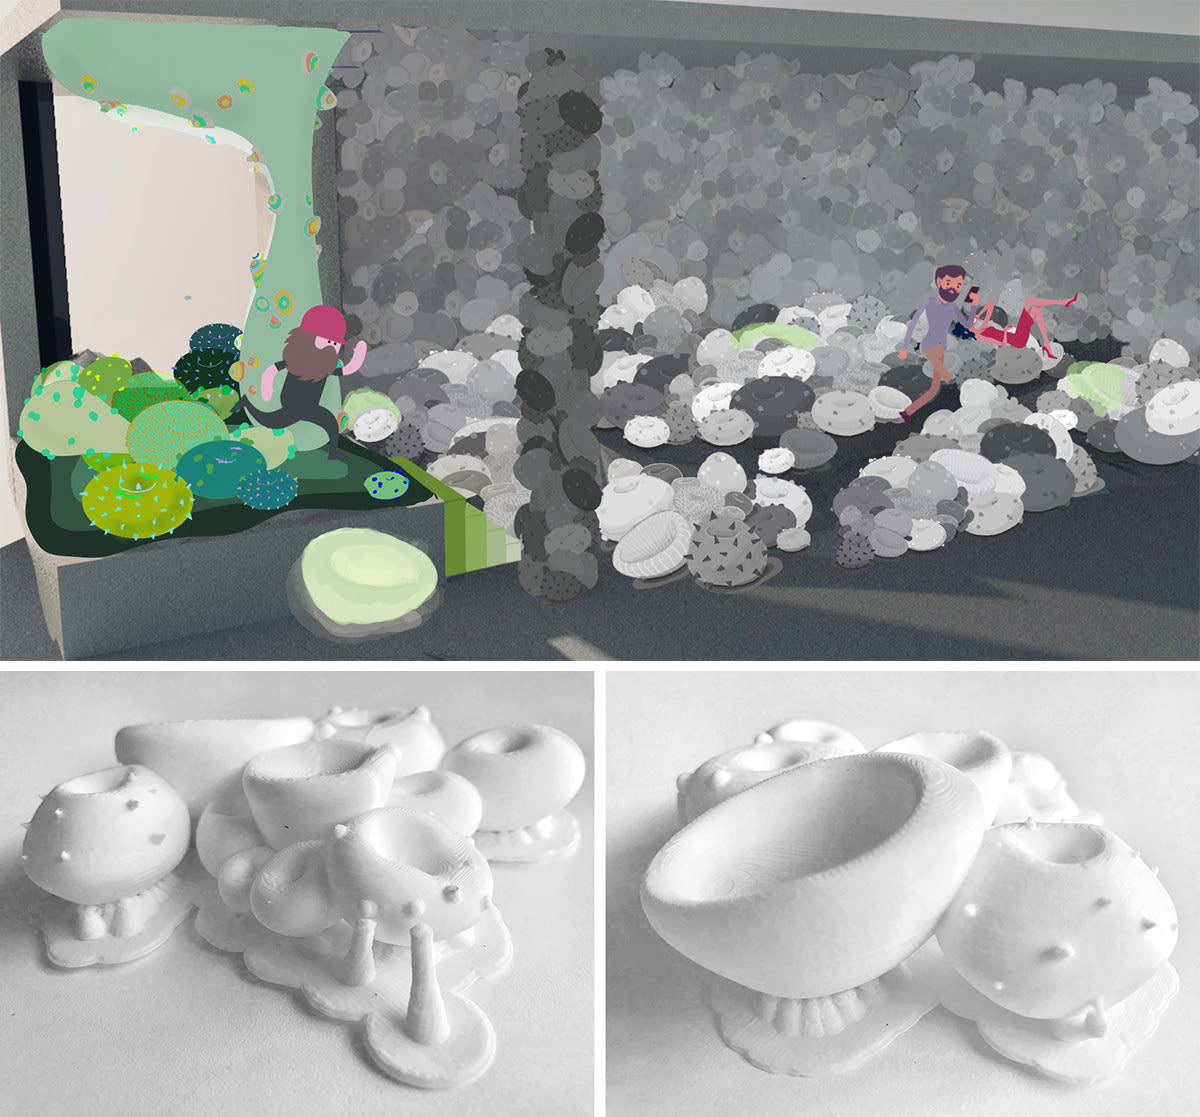 01_Qiongzhi-Zhu-concept-branded-space-for-Crunchy-Critters.jpg